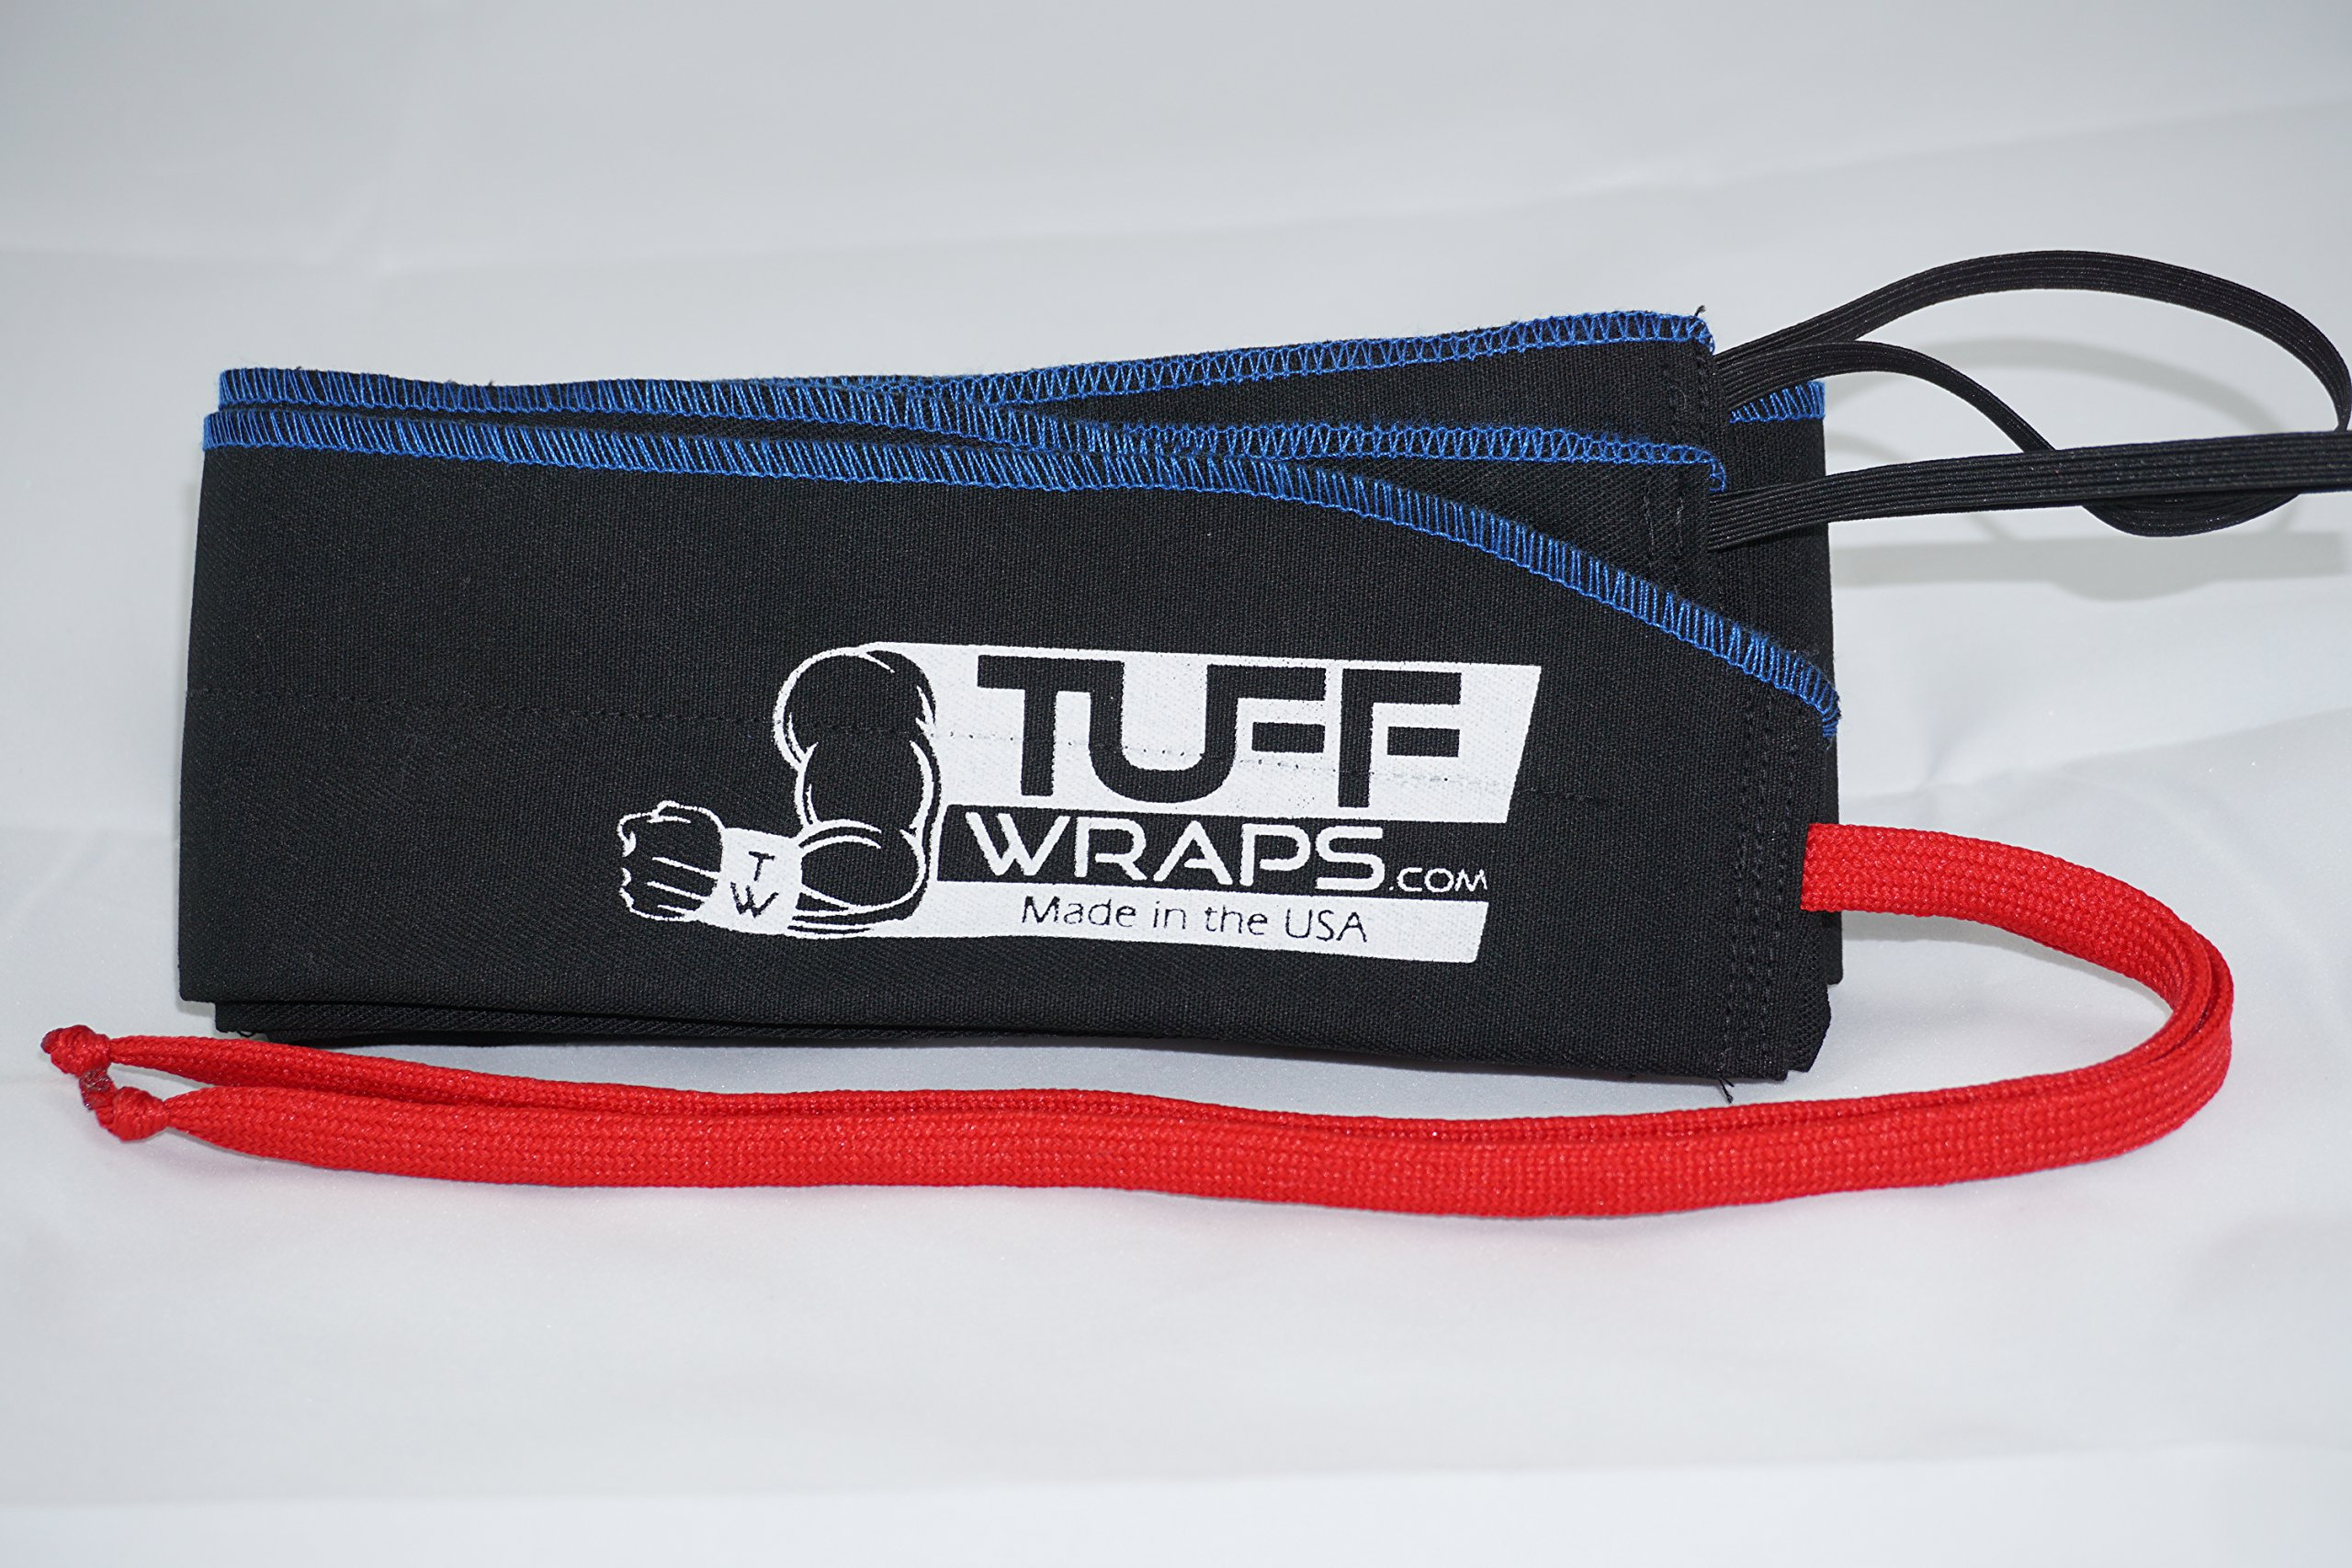 Blue/Red Tuffwraps: Wraps for Crossfit, Olympic Weightlifting, Power Lifting. Innovative Thumb Loop for Easy Application.